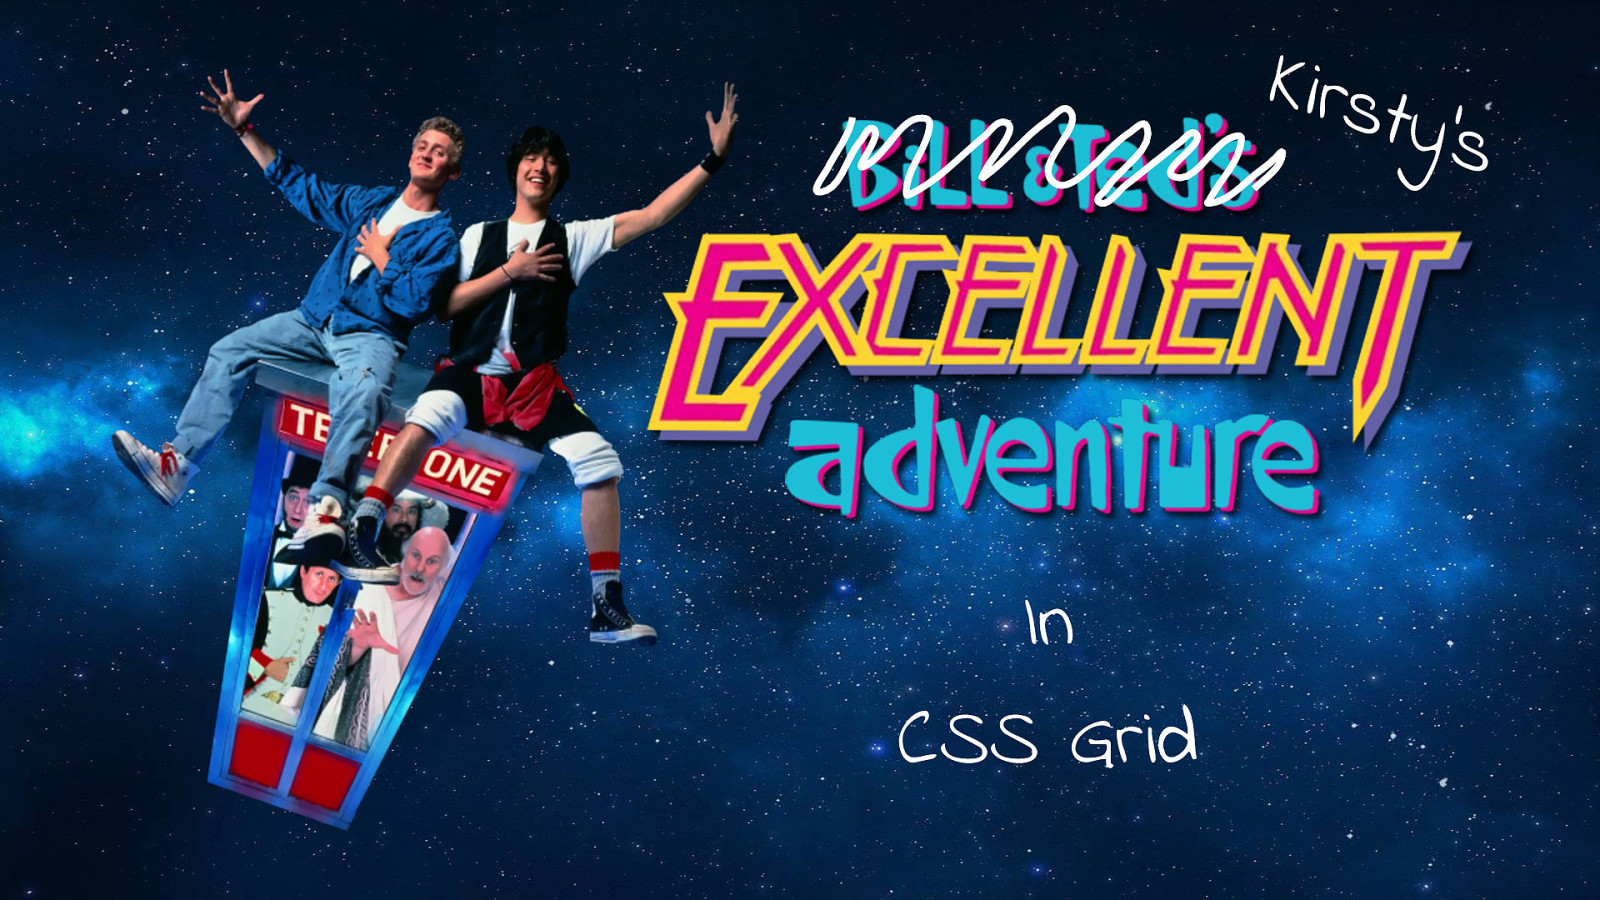 CSS GRID a most excellent adventure!